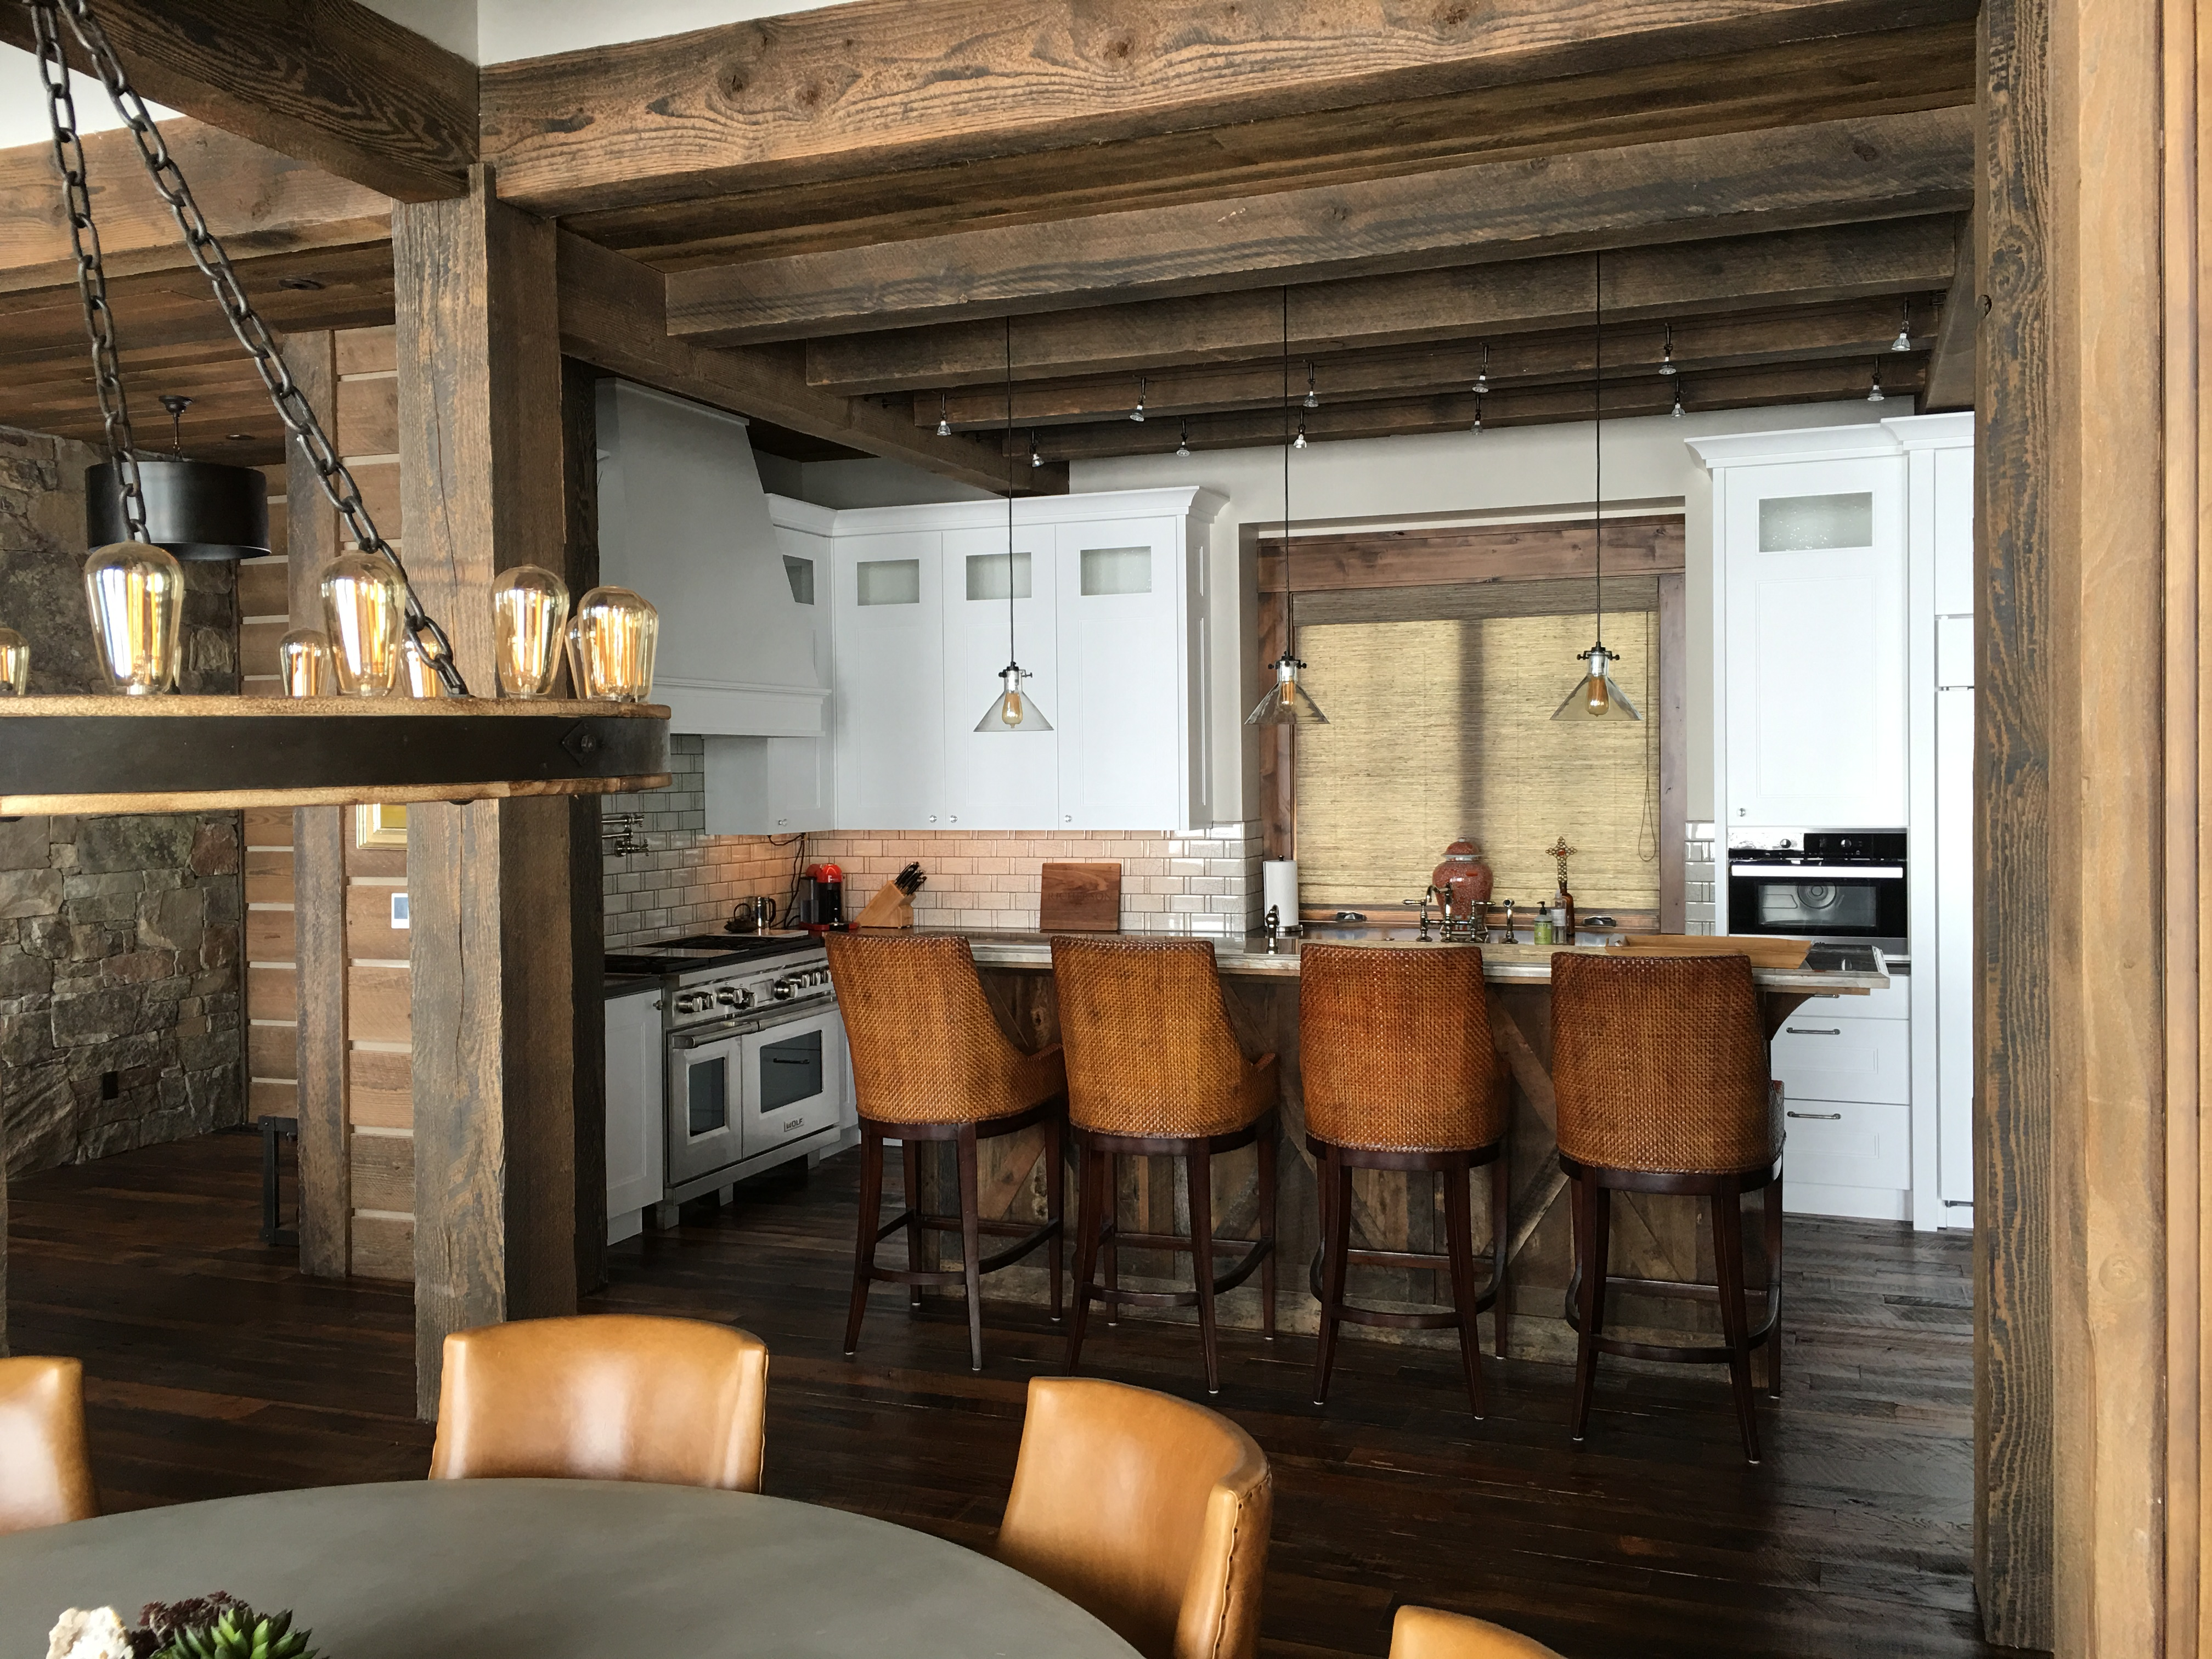 The Reclaimed Lumber Island Helps To Balance White Painted Kitchen In This Rustic Mountain Home